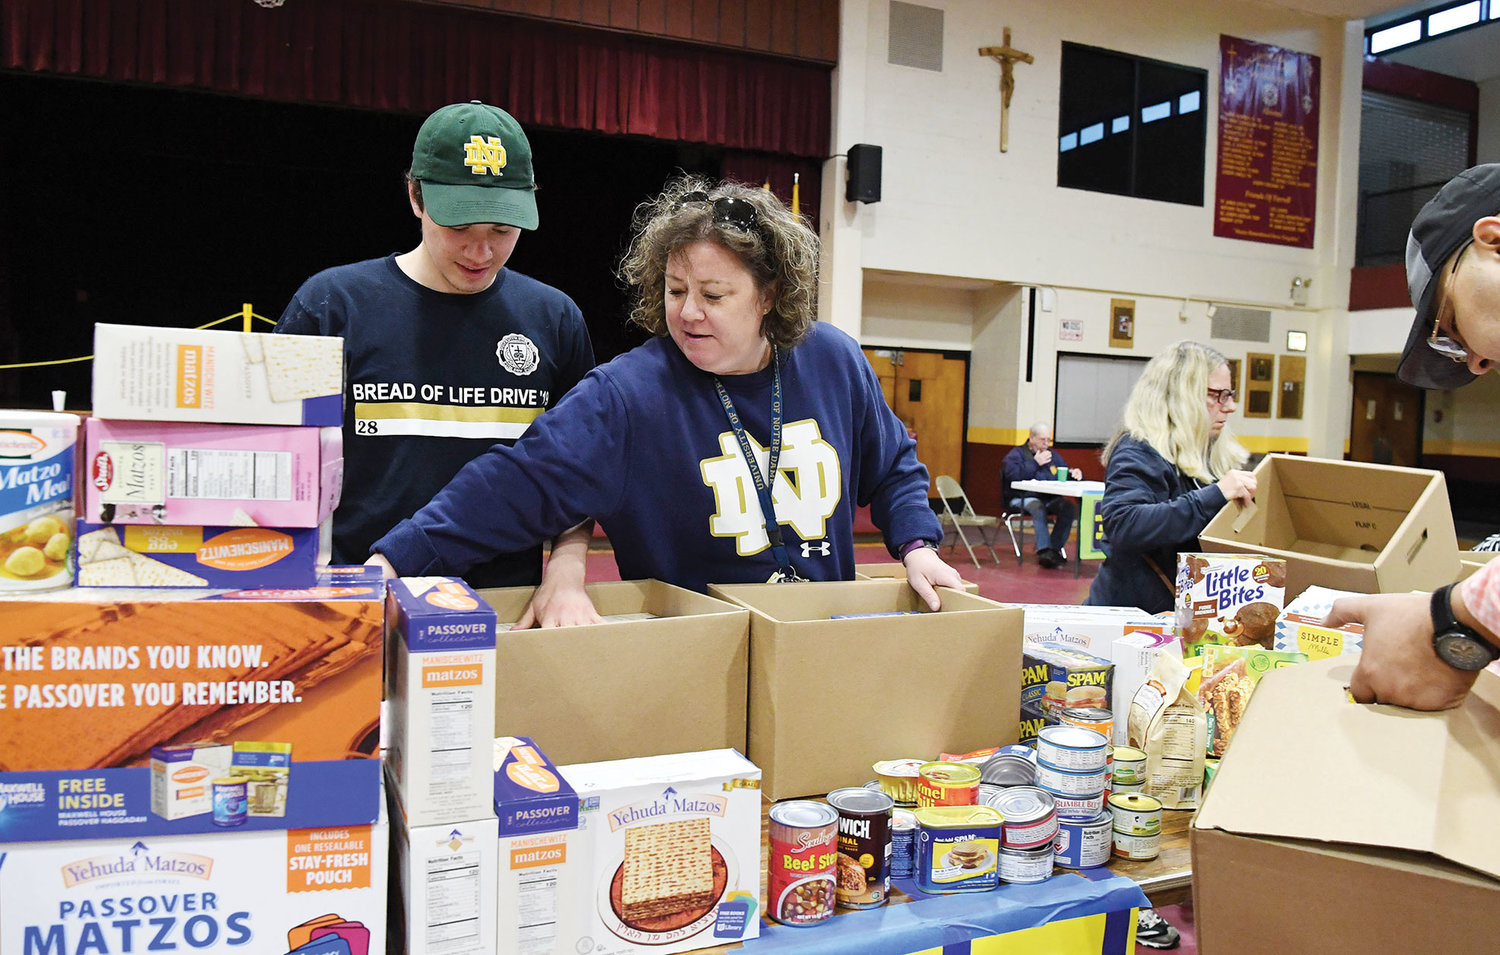 University of Notre Dame senior and Msgr. Farrell High School graduate Julio Ruiz-Gomez, left, sorts food with his mother, Elizabeth Ruiz-Gomez.